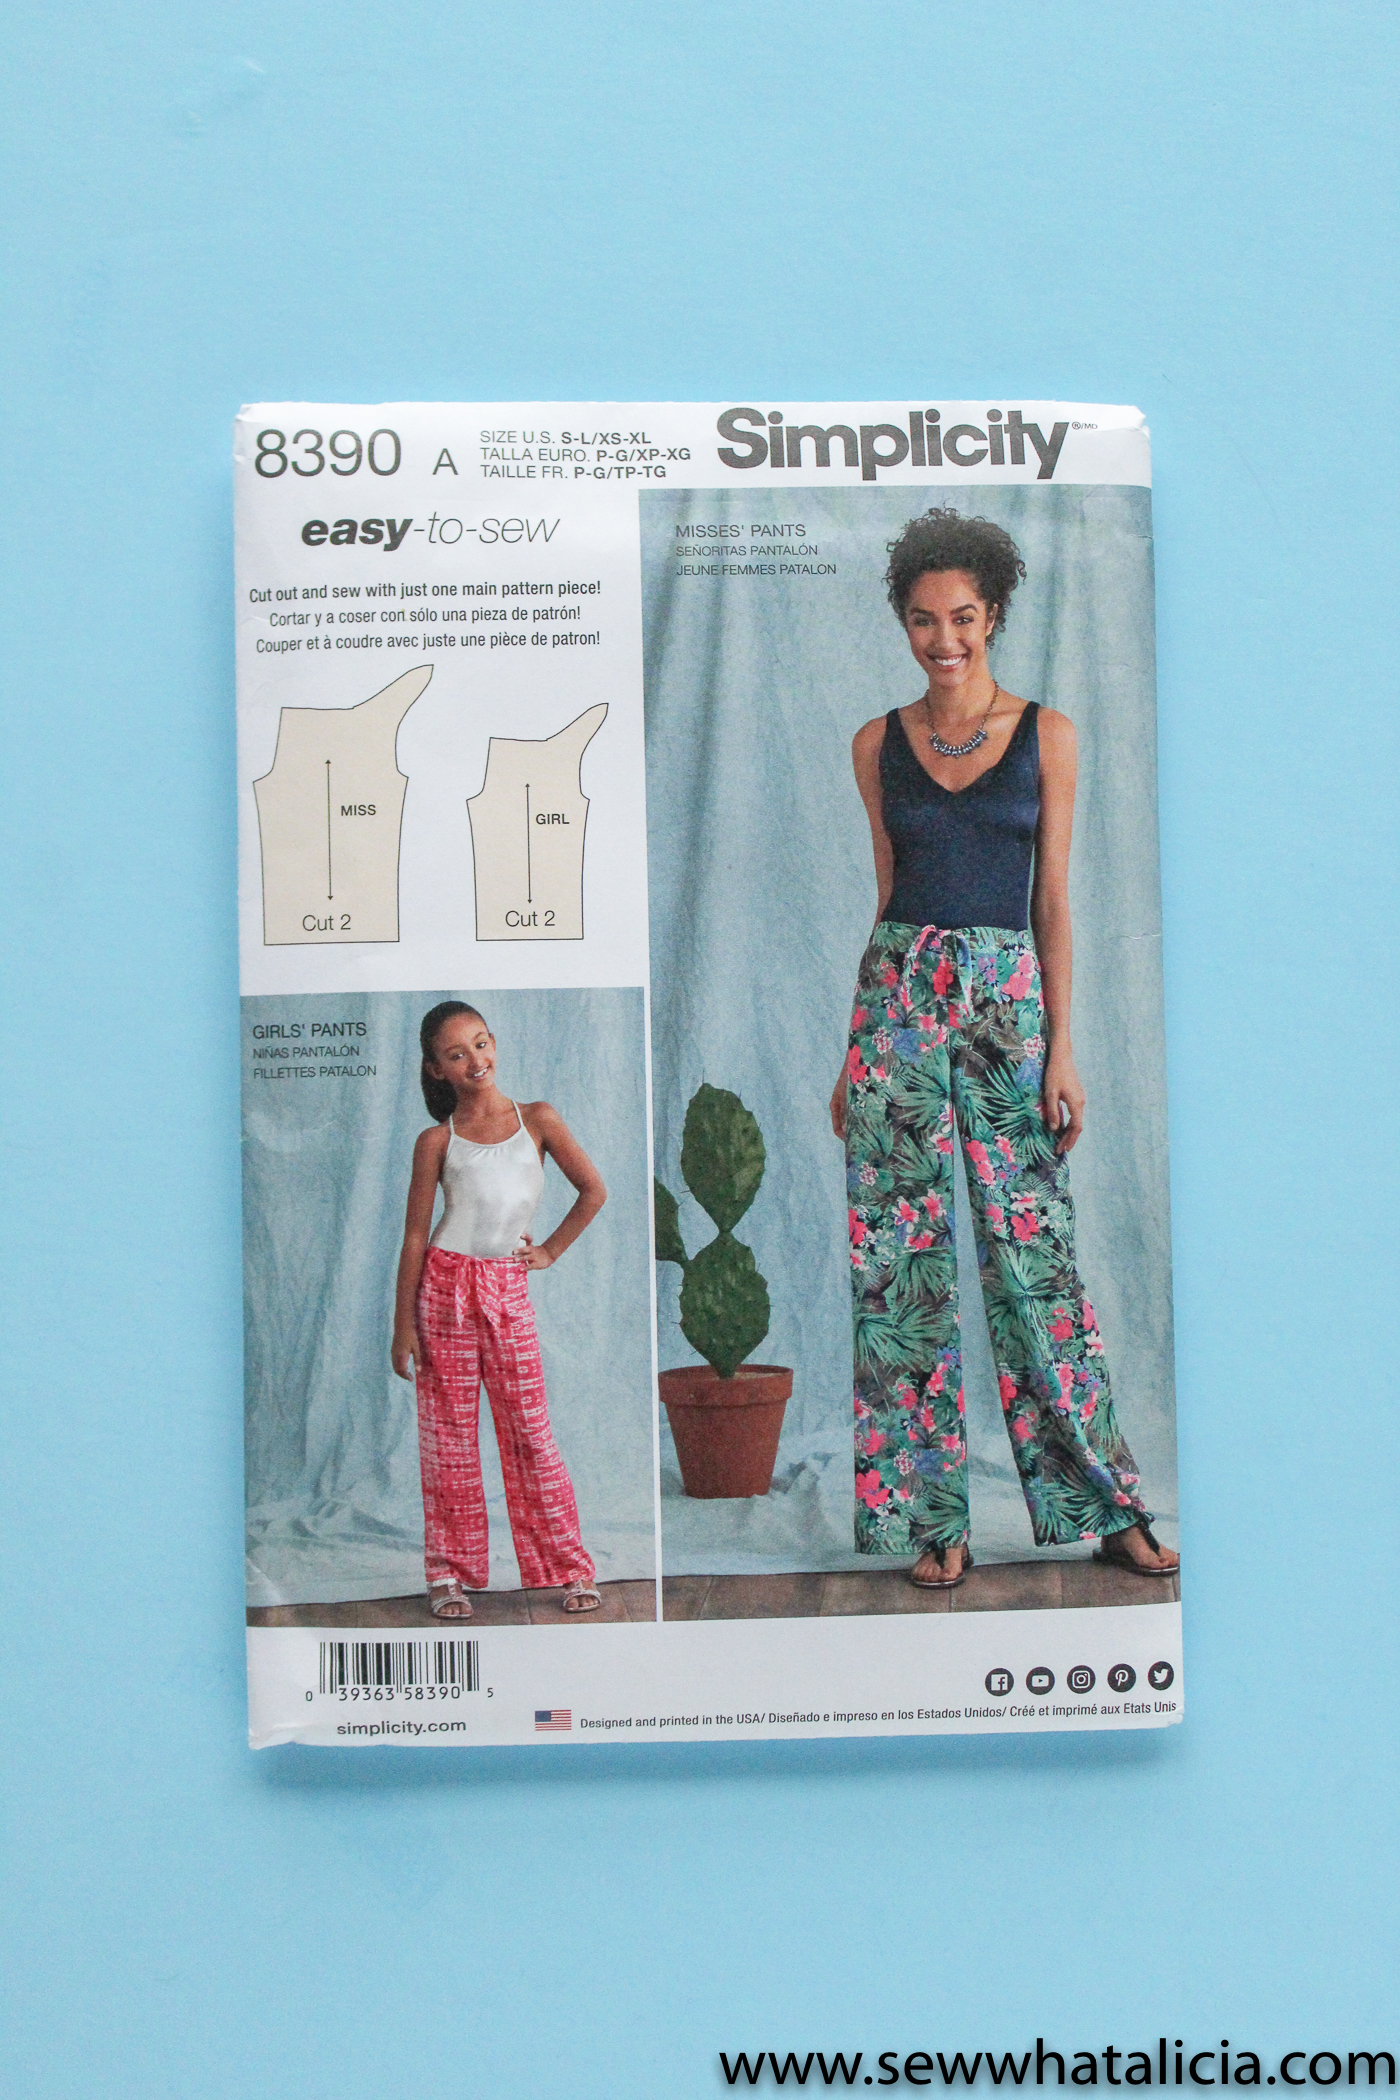 How To Read A Sewing Pattern: Reading These Patterns Can Be So Complicated.  They